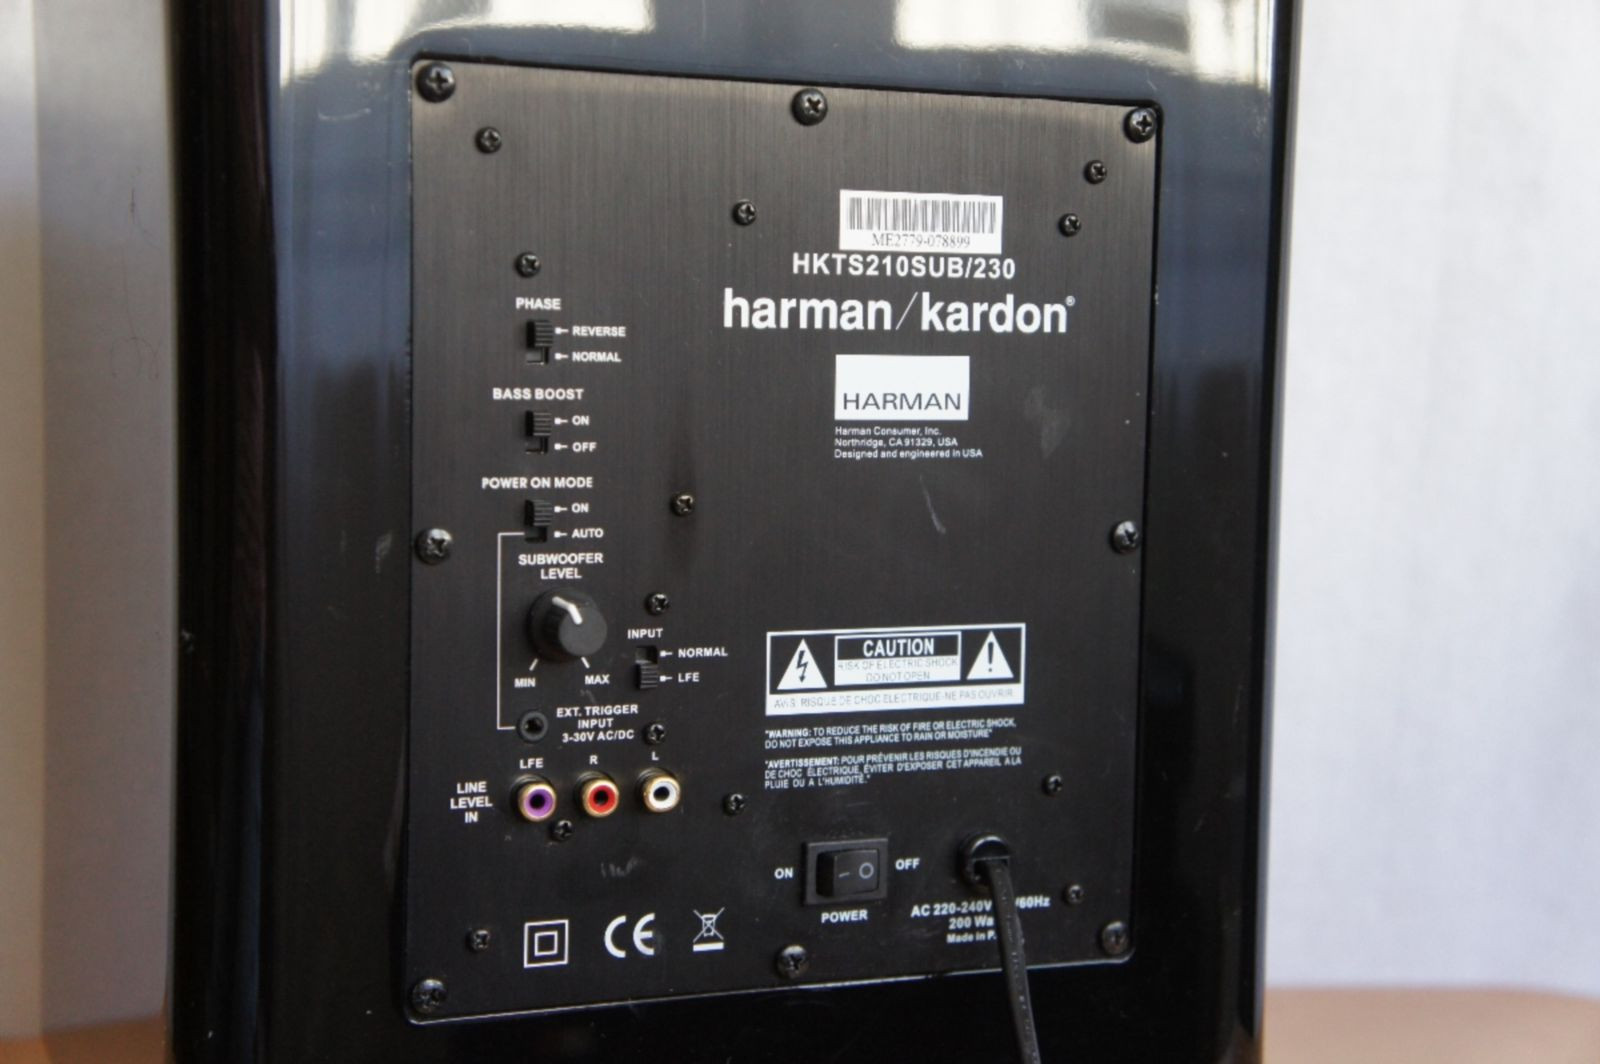 harman kardon hkts 210sub 230 subwoofer ebay. Black Bedroom Furniture Sets. Home Design Ideas